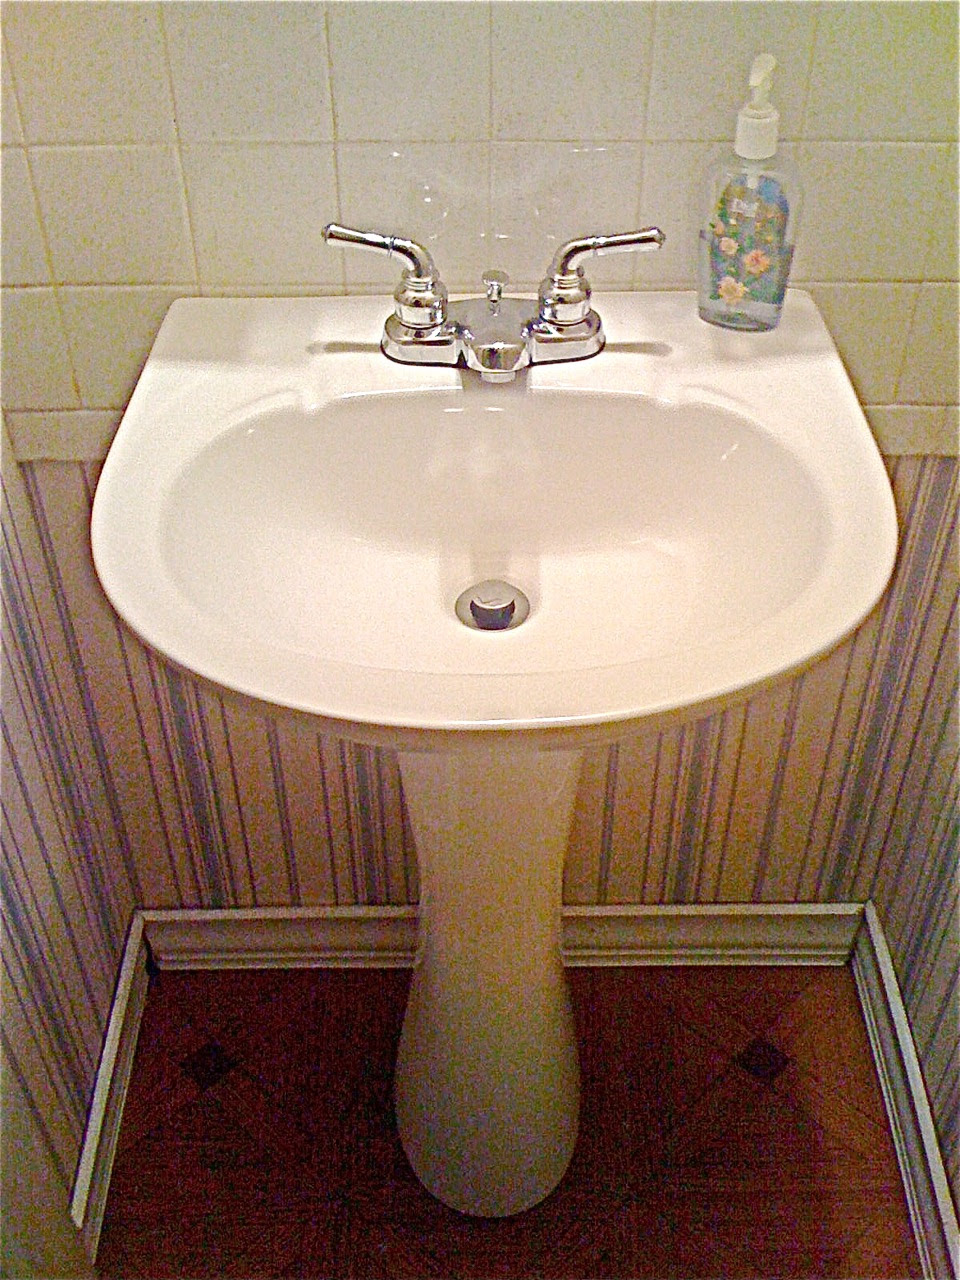 7 Small Bathroom Remodel Ideas | How to Update Small Bath